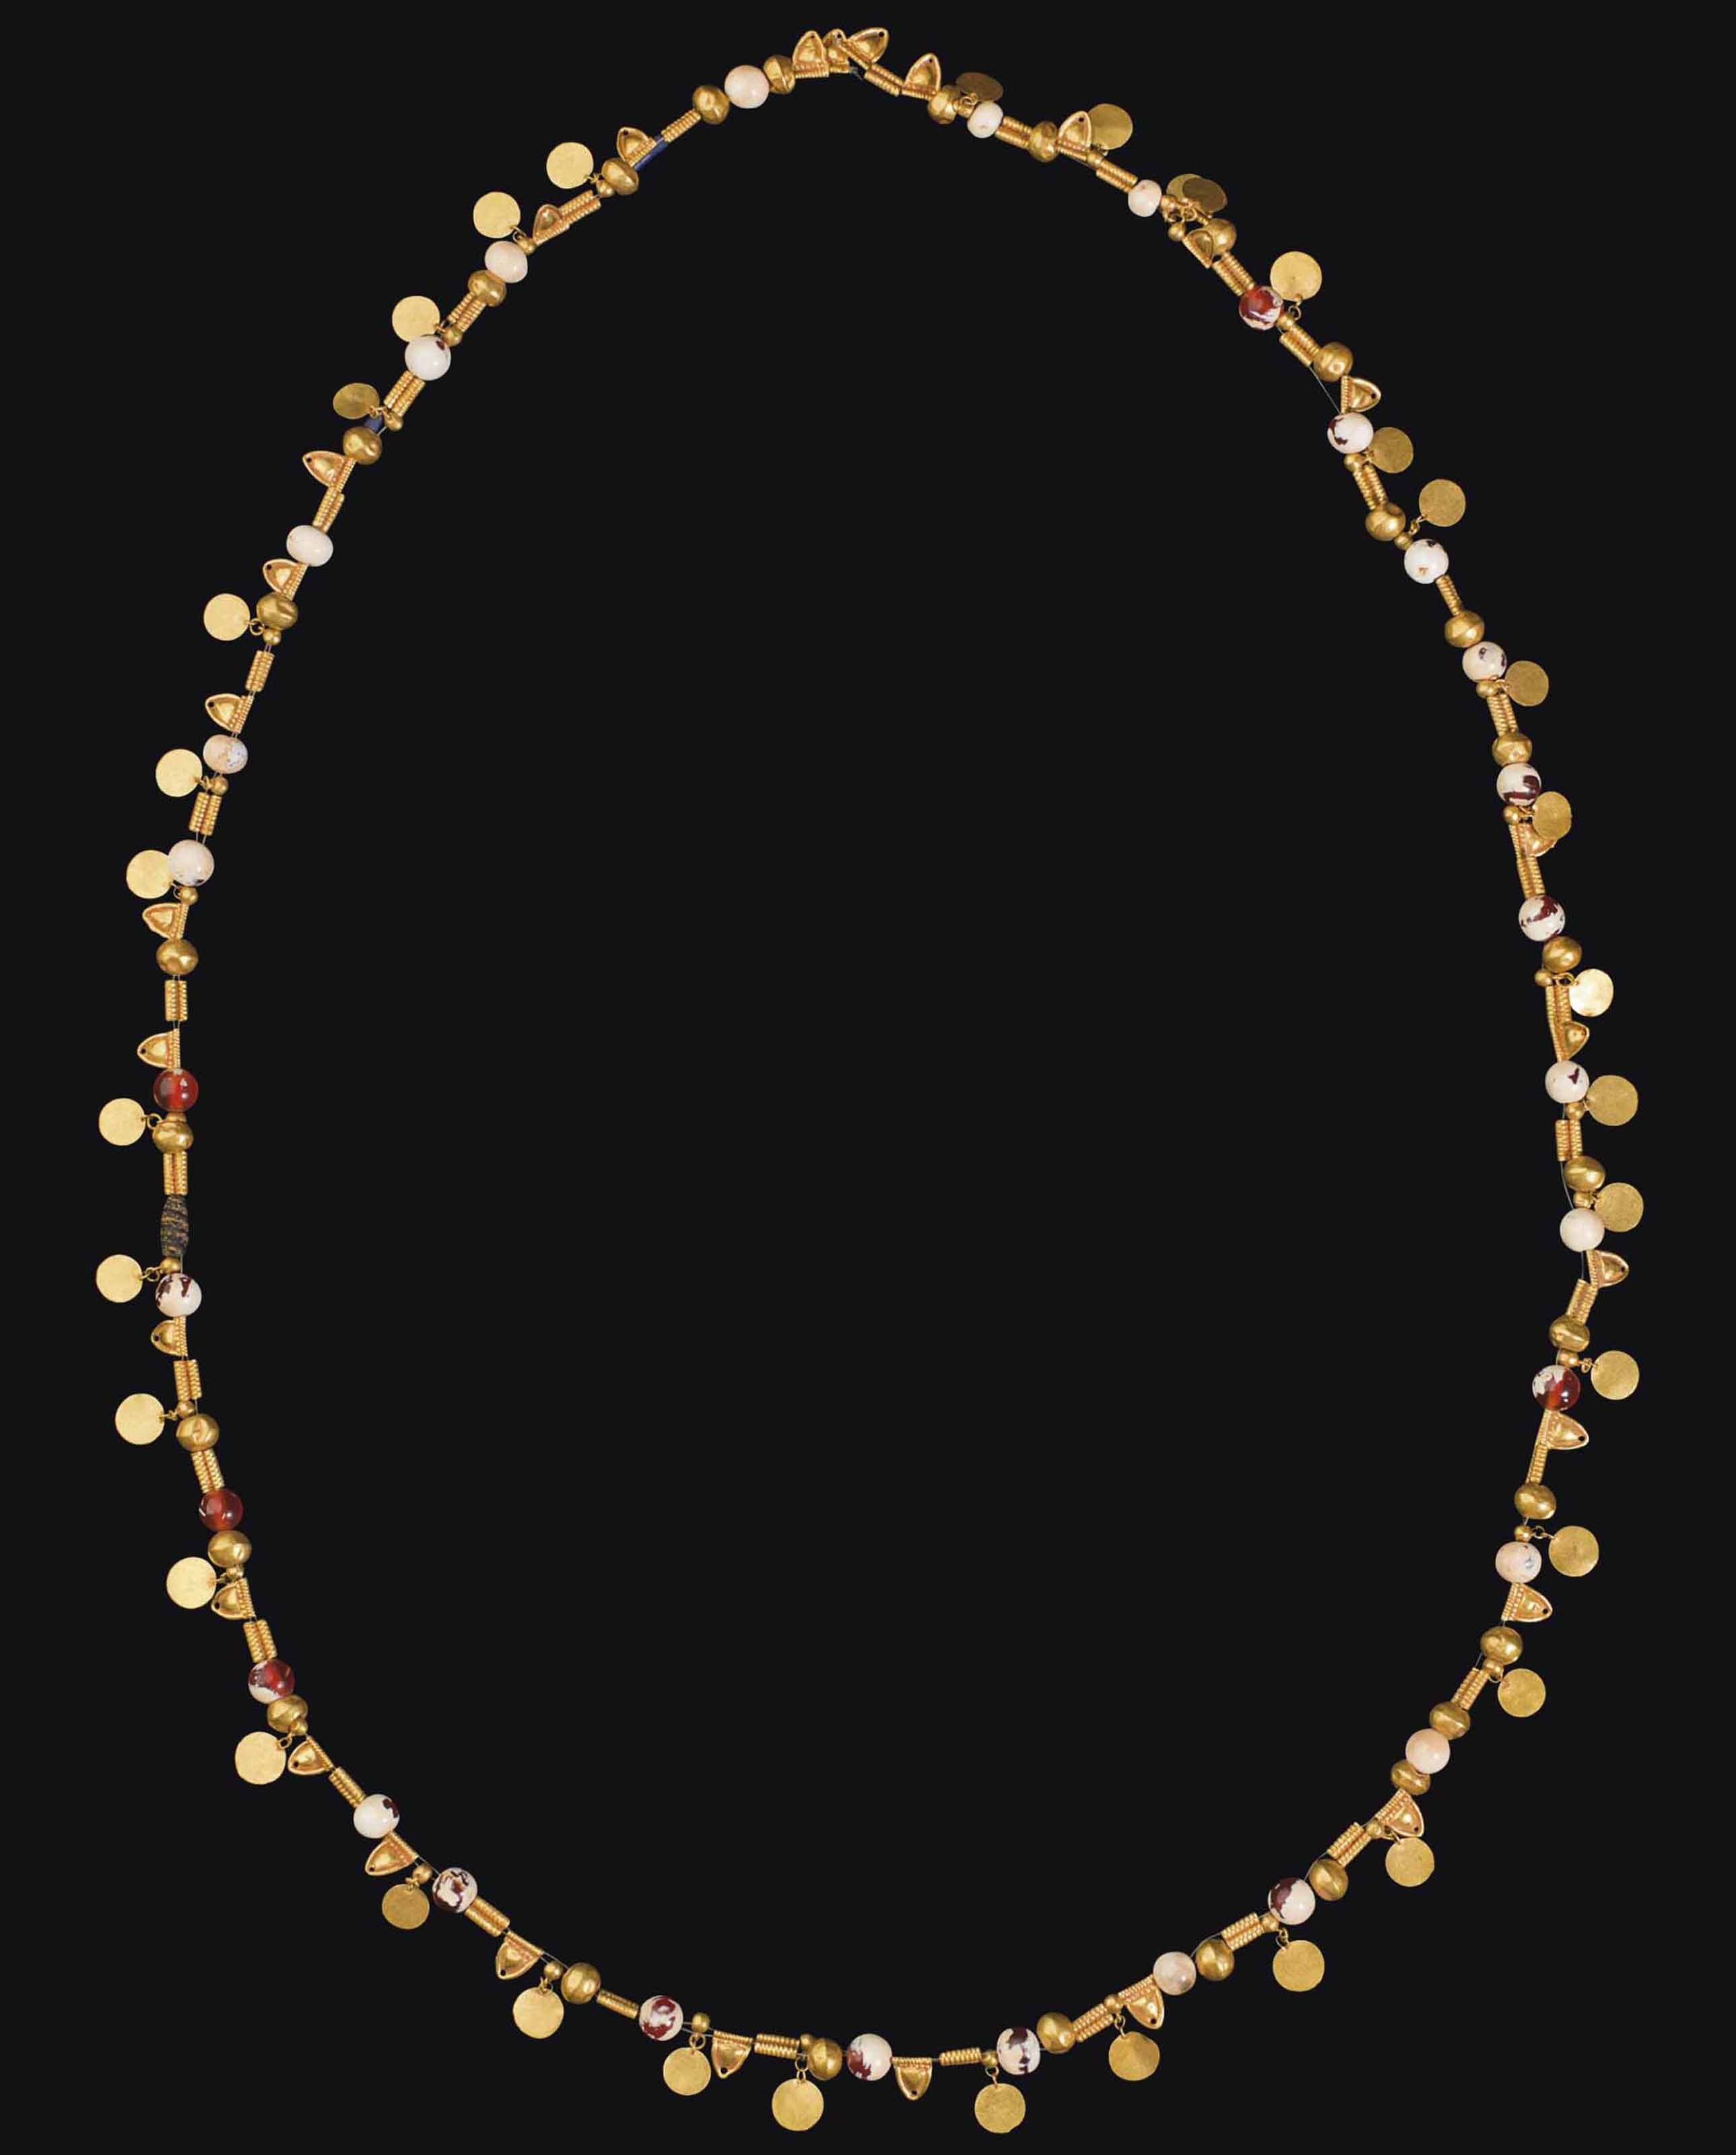 A GREEK GOLD AND CARNELIAN BEAD NECKLACE